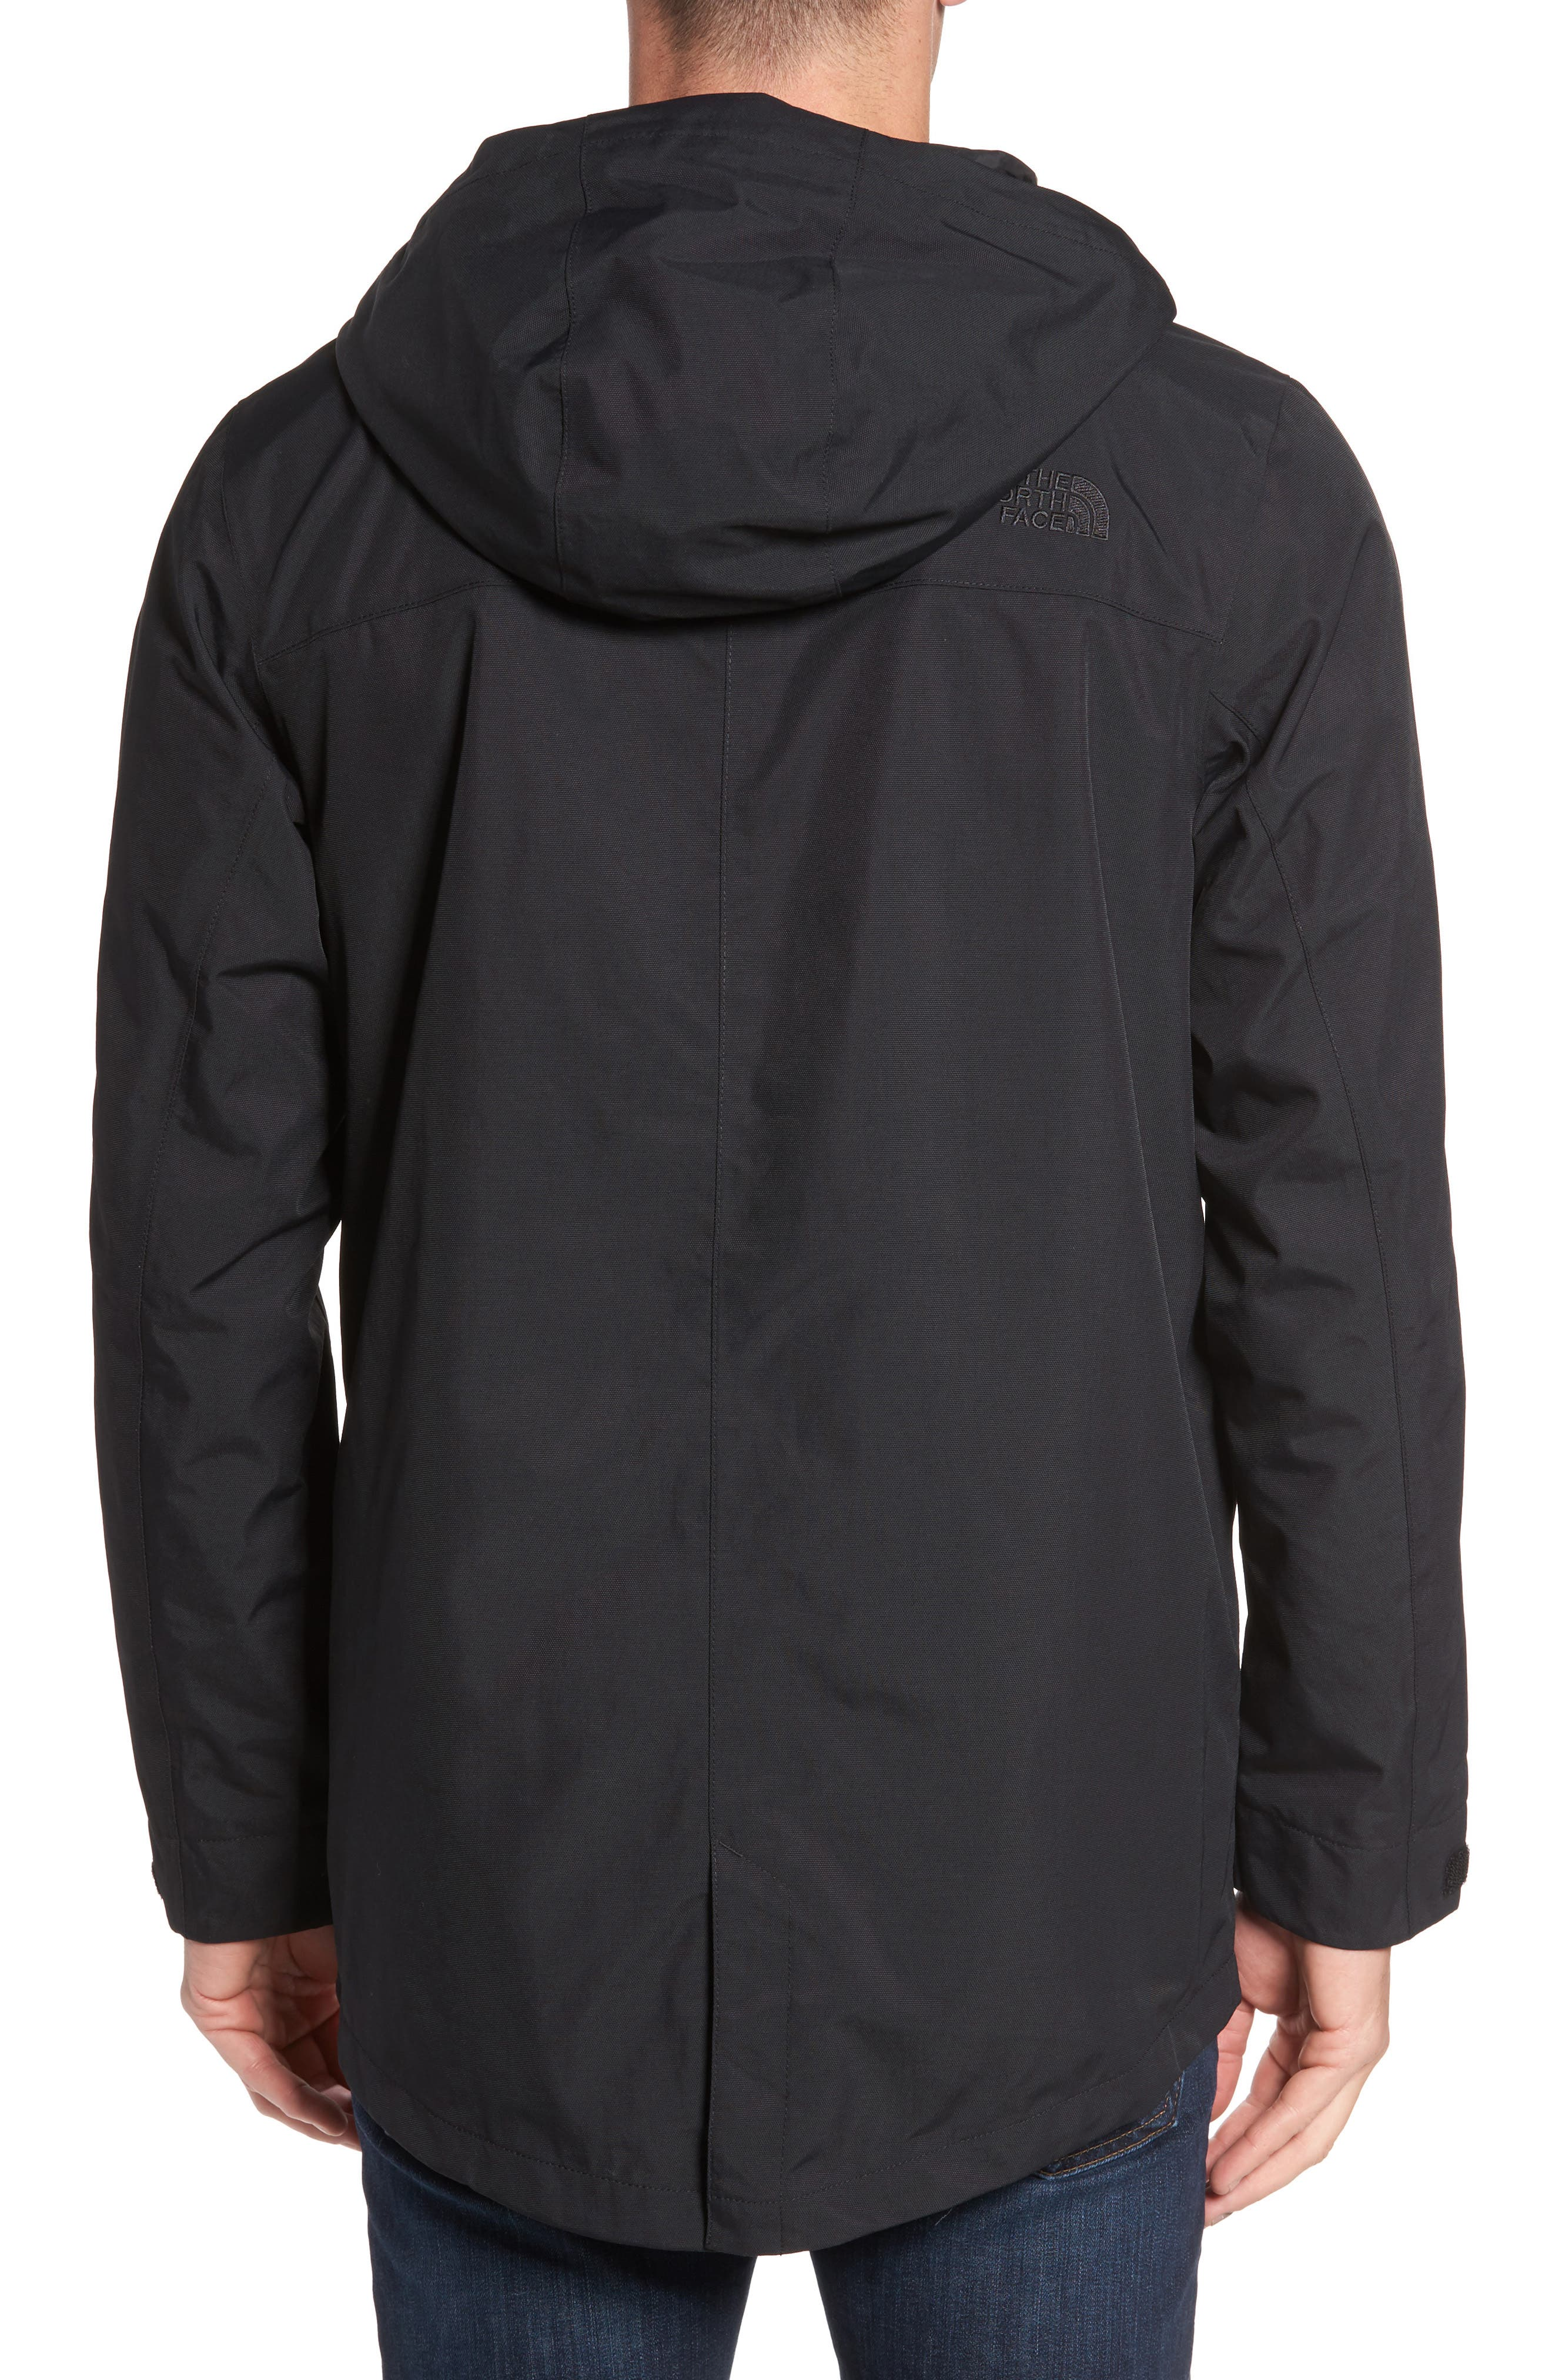 THE NORTH FACE, El Misti Trench II Hooded Jacket, Alternate thumbnail 2, color, 001